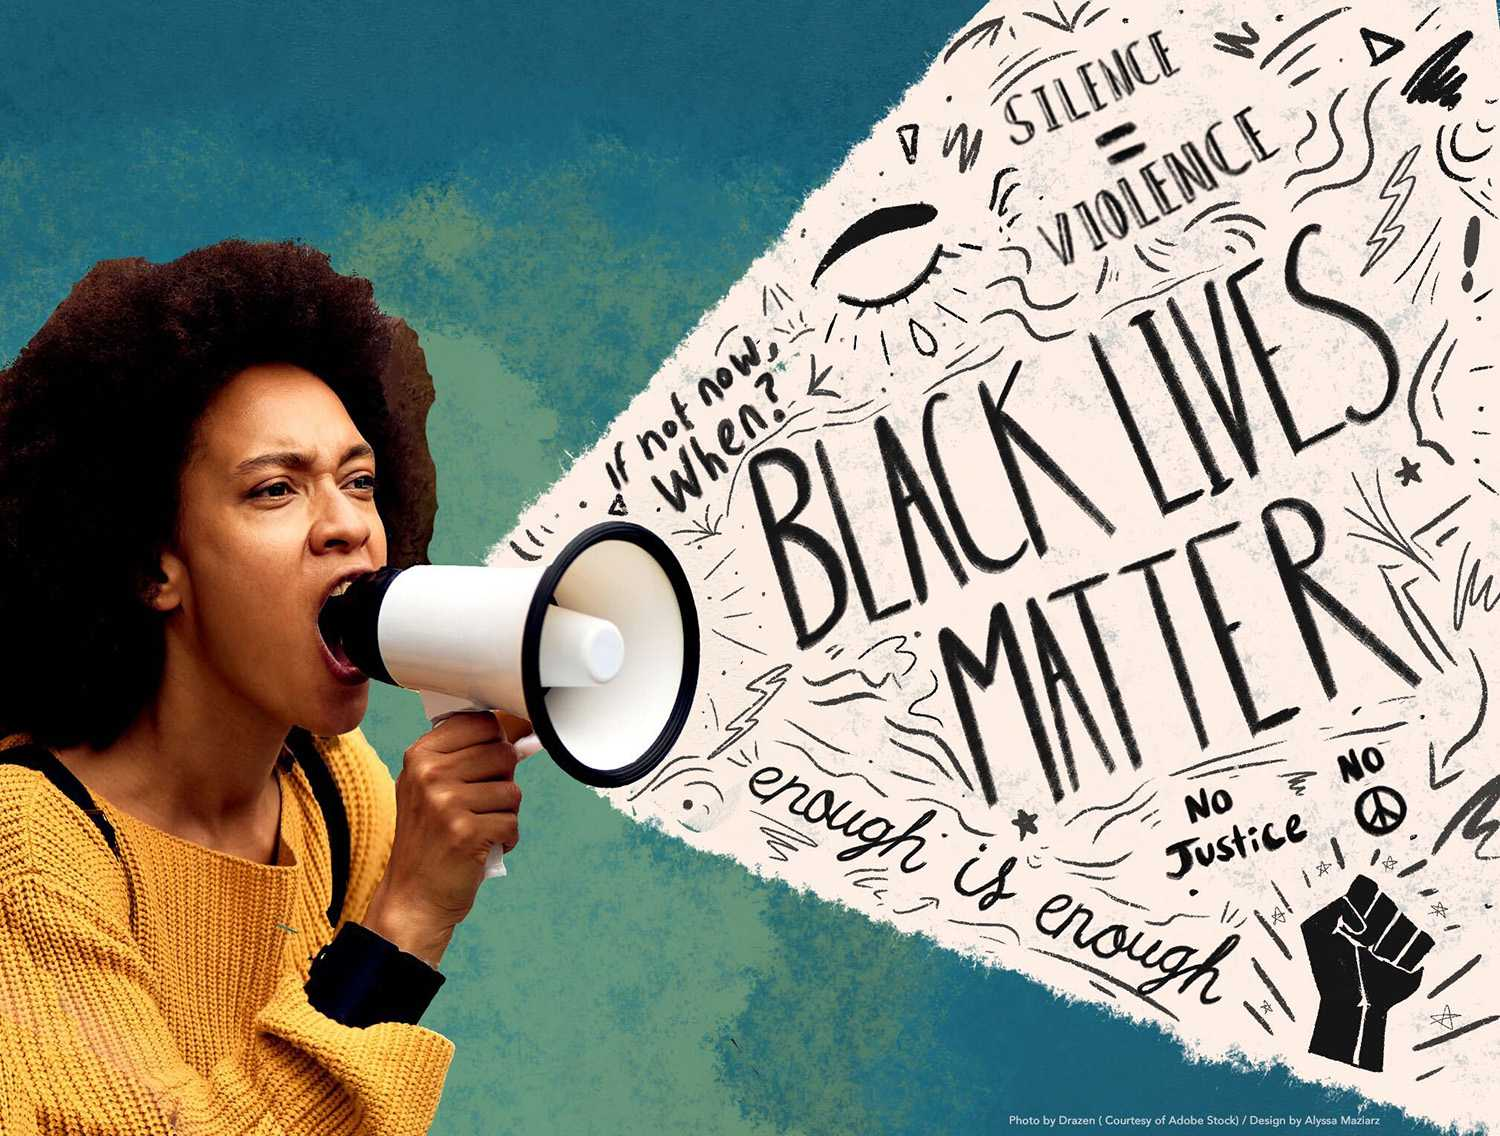 There is power within the Black Lives Matter movement. This includes some of the slogans from the movement, which have helped achieve the arrest of the officers involved in George Floyd's death and the disbanding of police departments in several US cities. By Alyssa Maziarz.